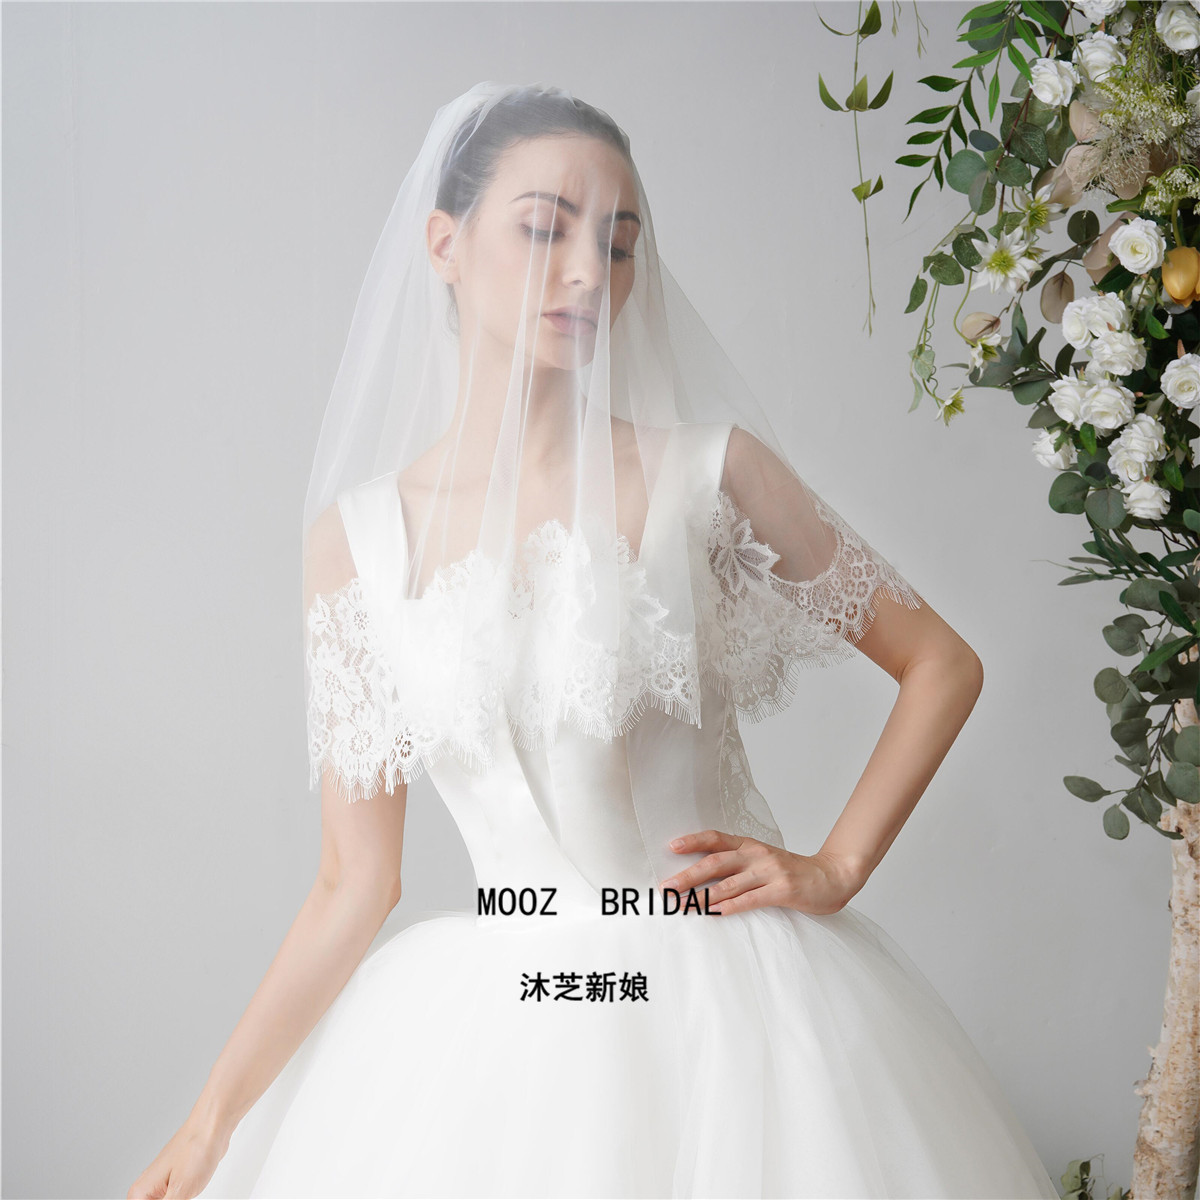 In Stock Wedding Accesories Metal Comb Soft Tulle Lace Amazing Quality Abseolstely Beautiful Detai Edge Short Bridal Veils